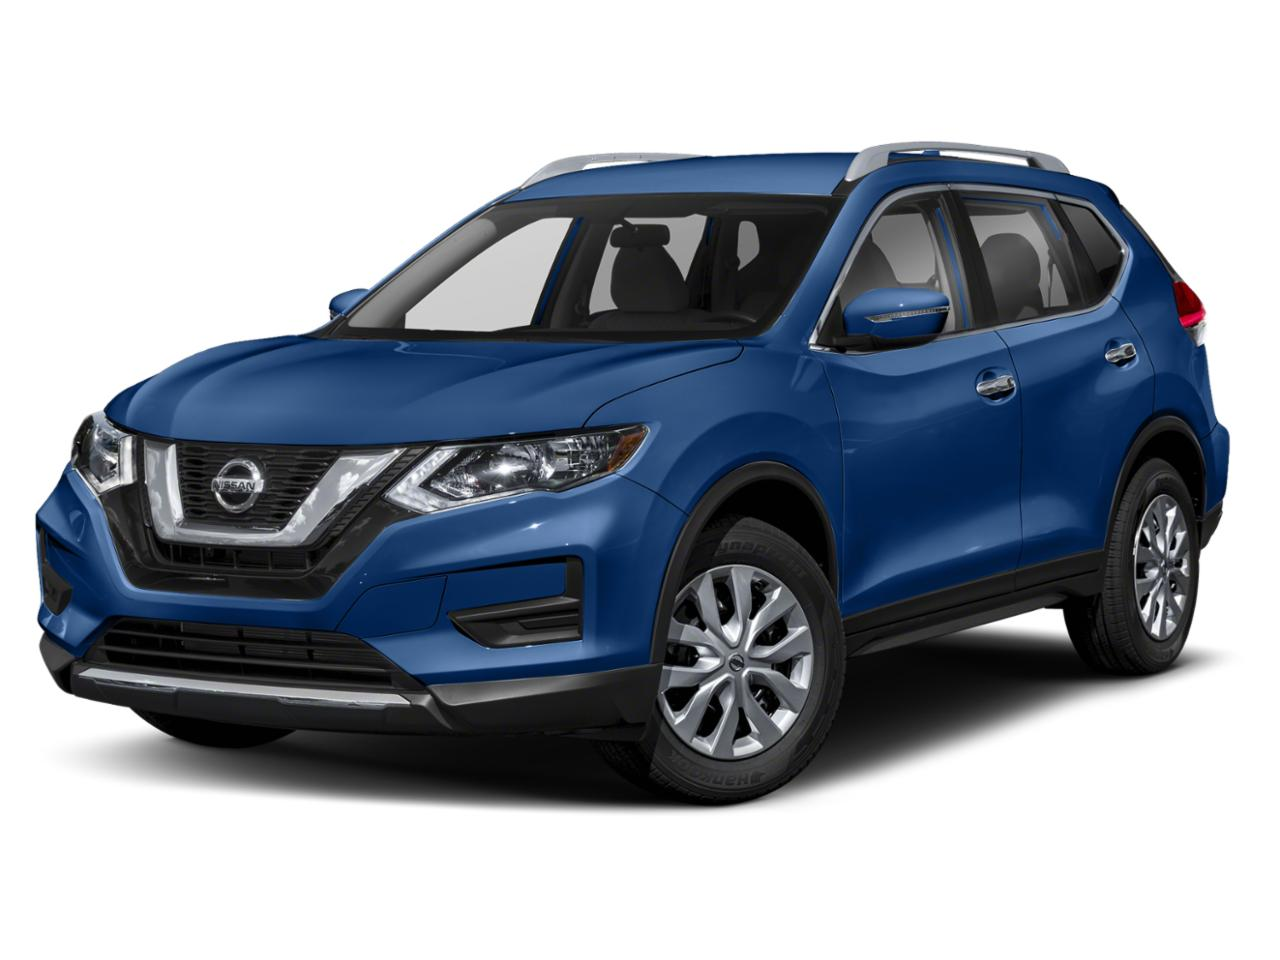 2018 Nissan Rogue Vehicle Photo in TEMPLE, TX 76504-3447